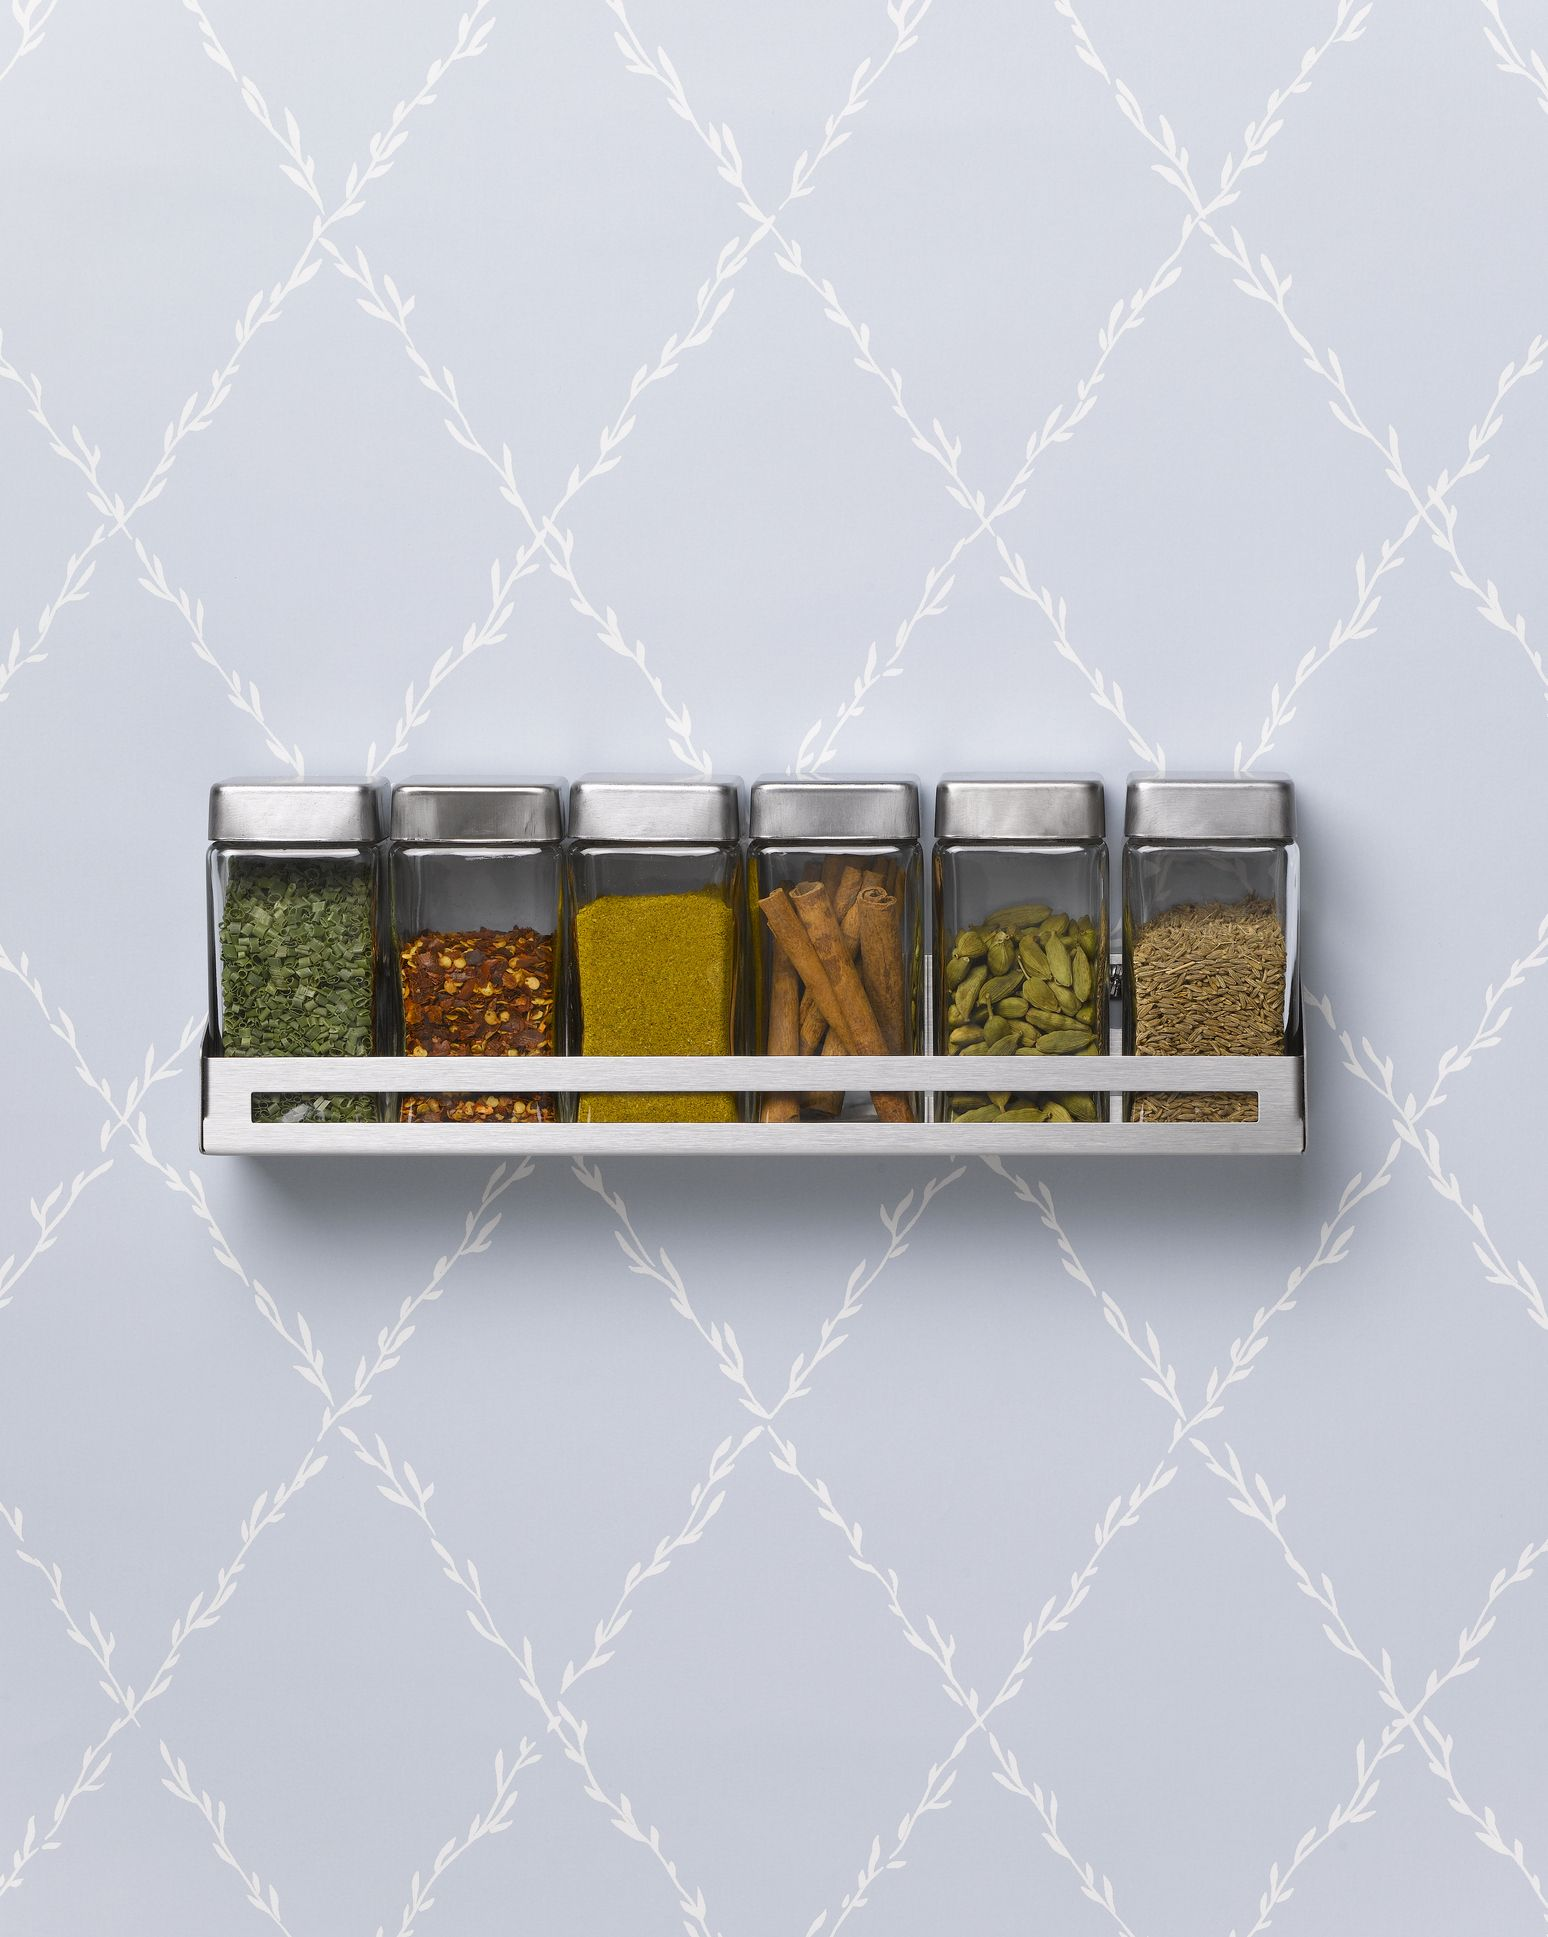 spice storage solutions for your kitchen